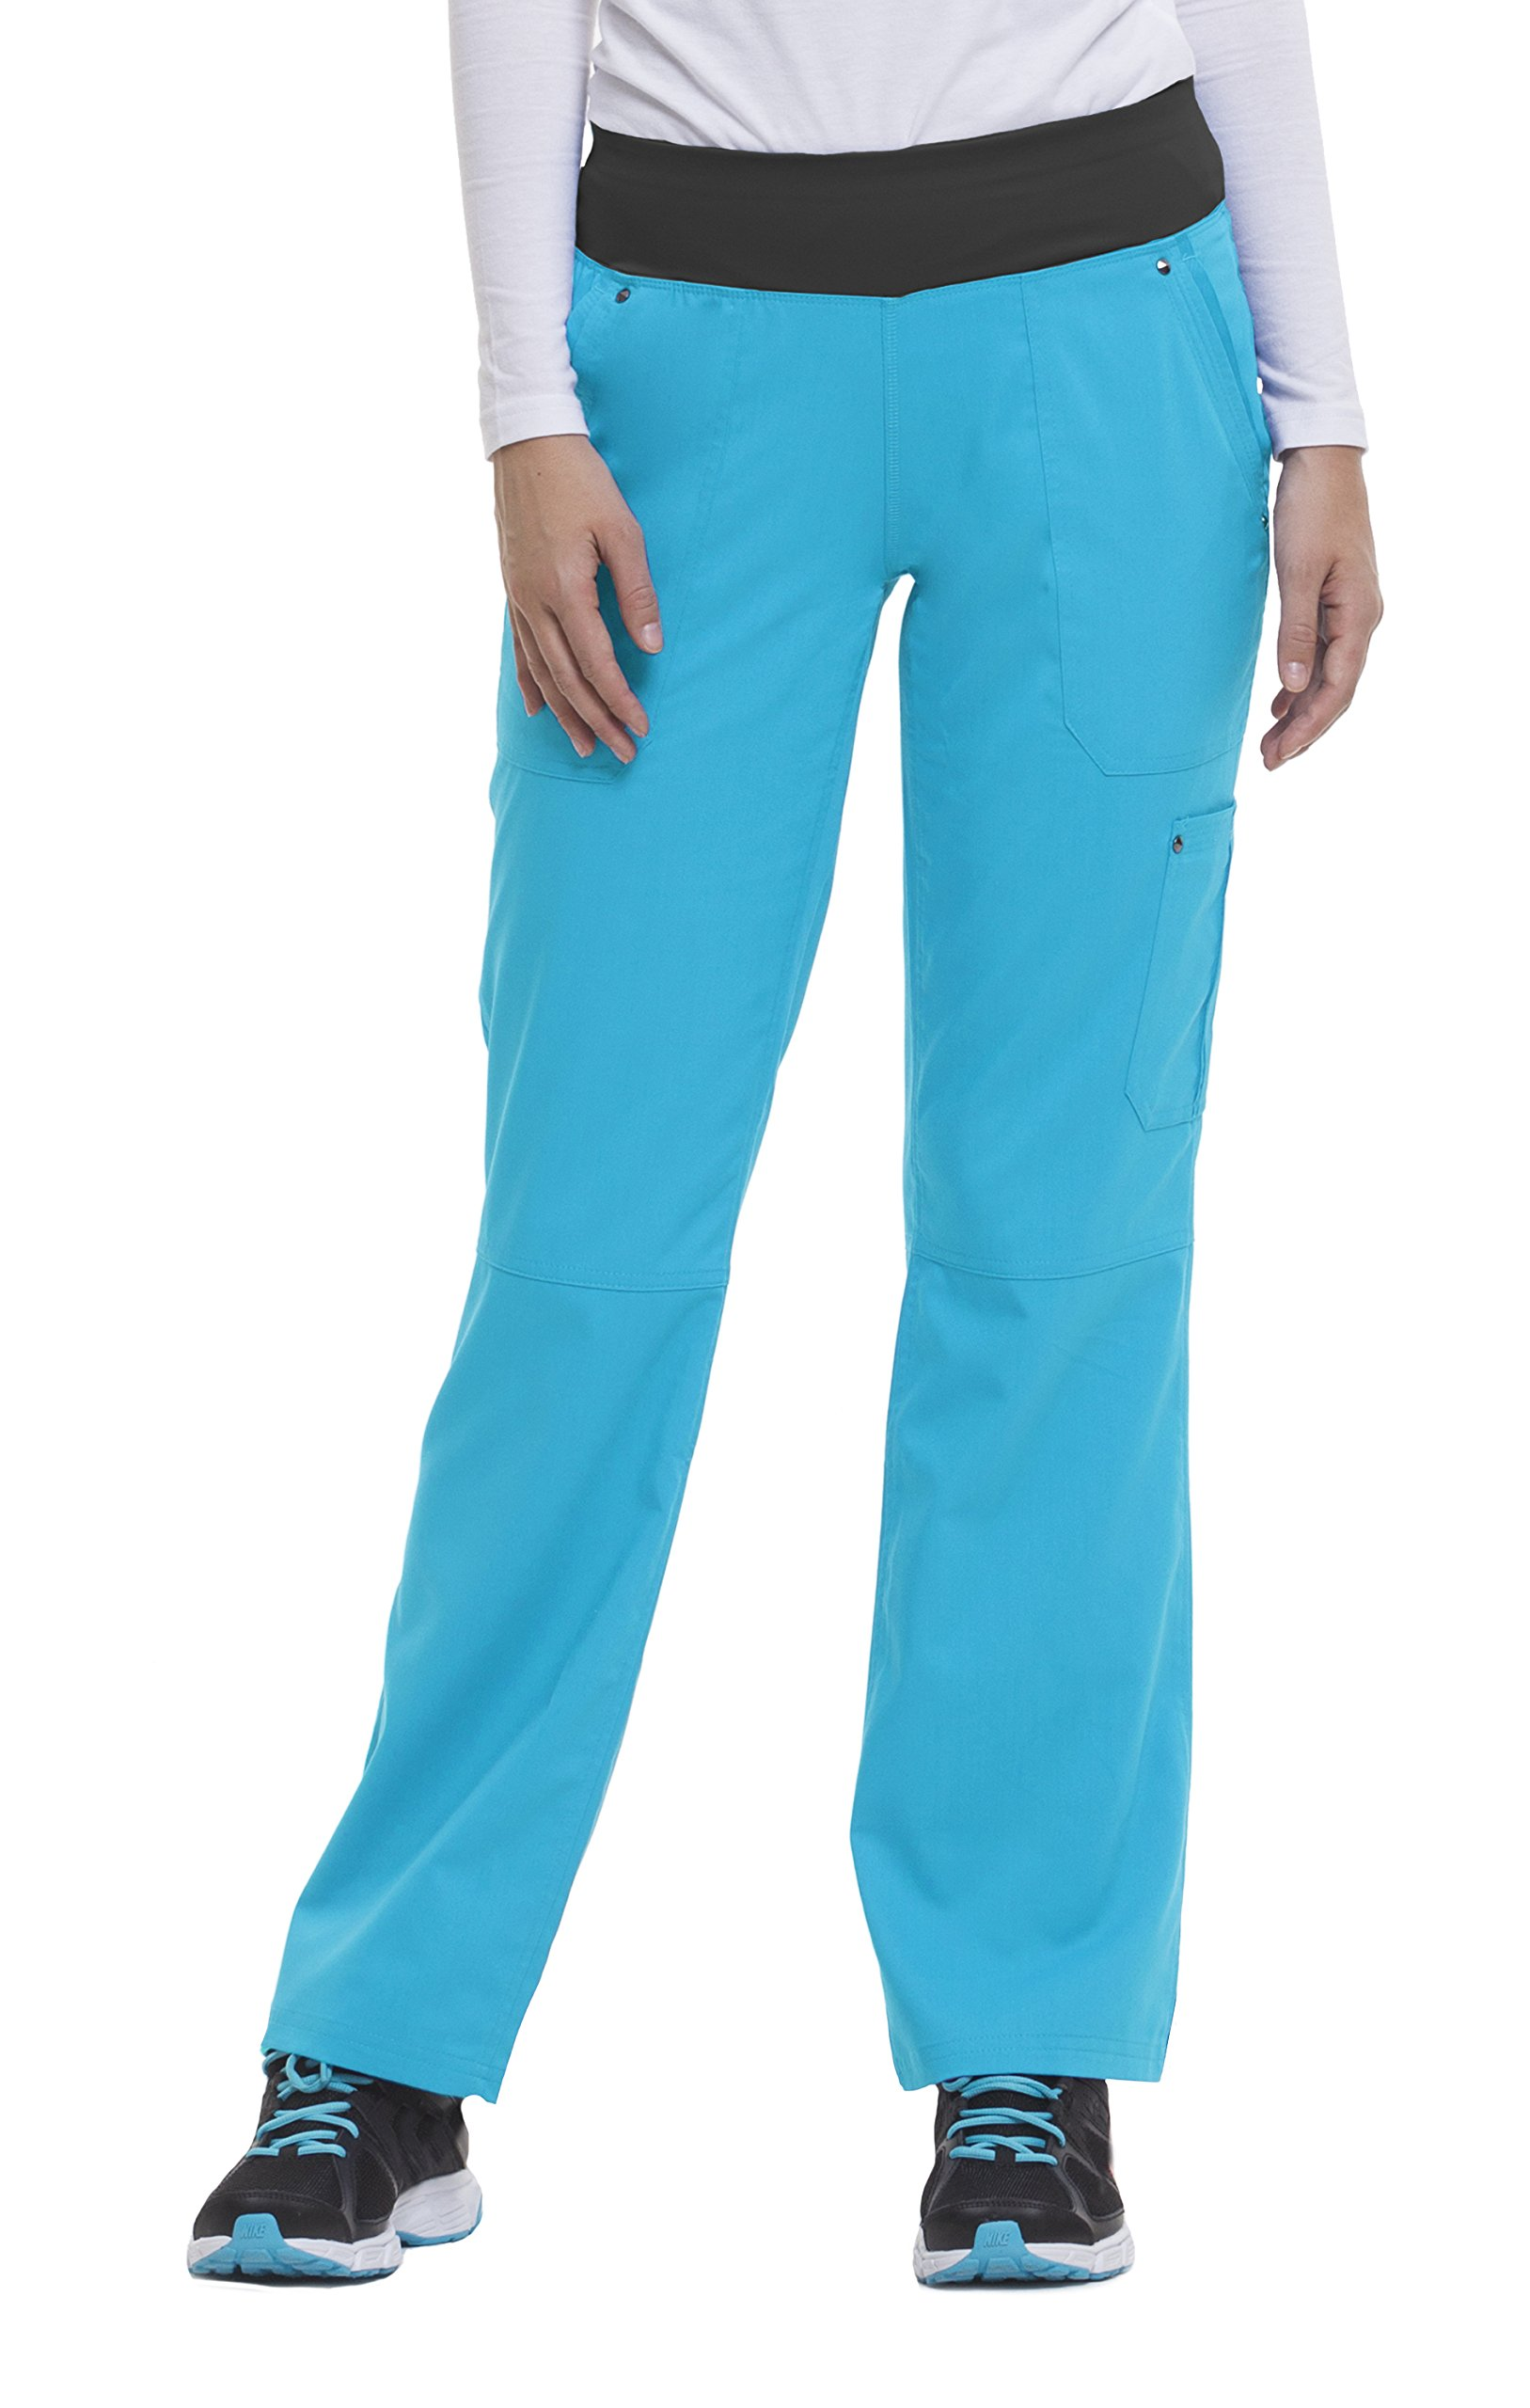 healing hands Purple Label Yoga Women's Tori 9133 5 Pocket Knit Waist Pant Turquoise-XX-Small Petite by healing hands (Image #1)